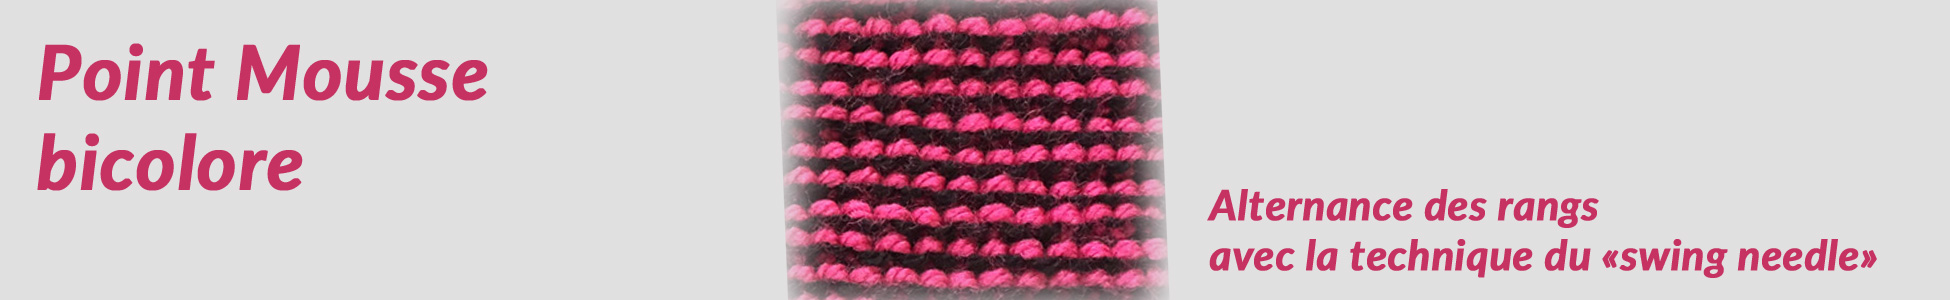 Point fantaisie de tricot : Mousse bicolore